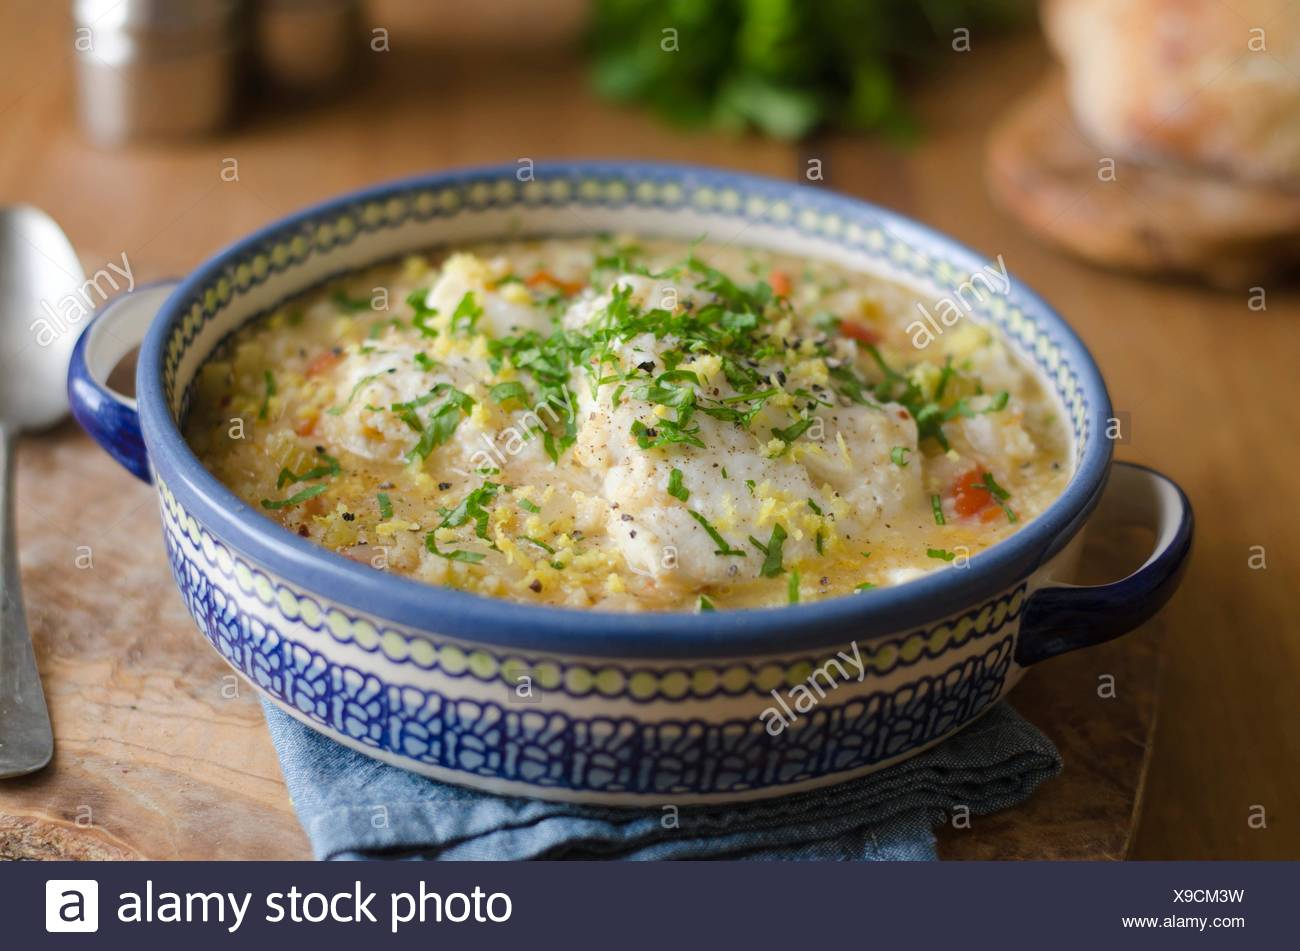 Sicilian stew made of fish, couscous and tomatoes. - Stock Image